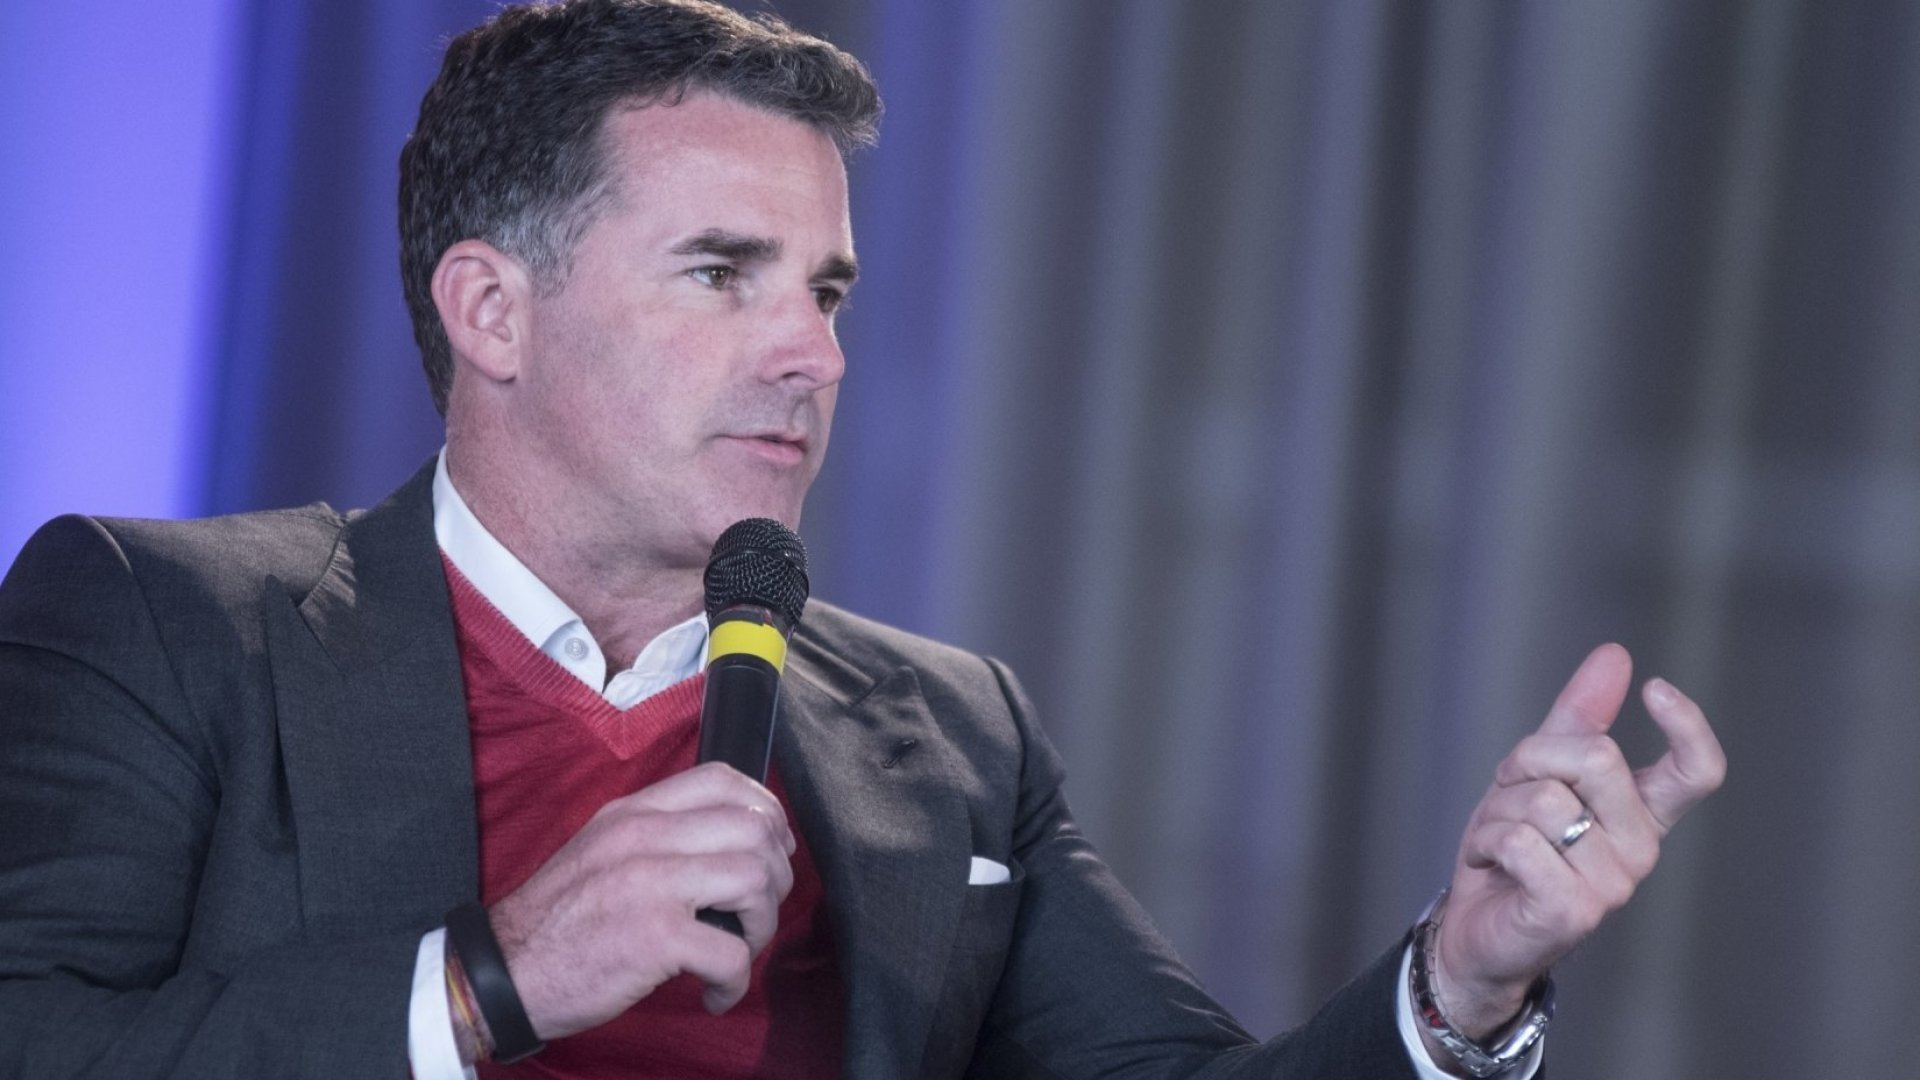 Kevin Plank's Under Armour Announces $130 Million Restructuring Plan and Layoffs